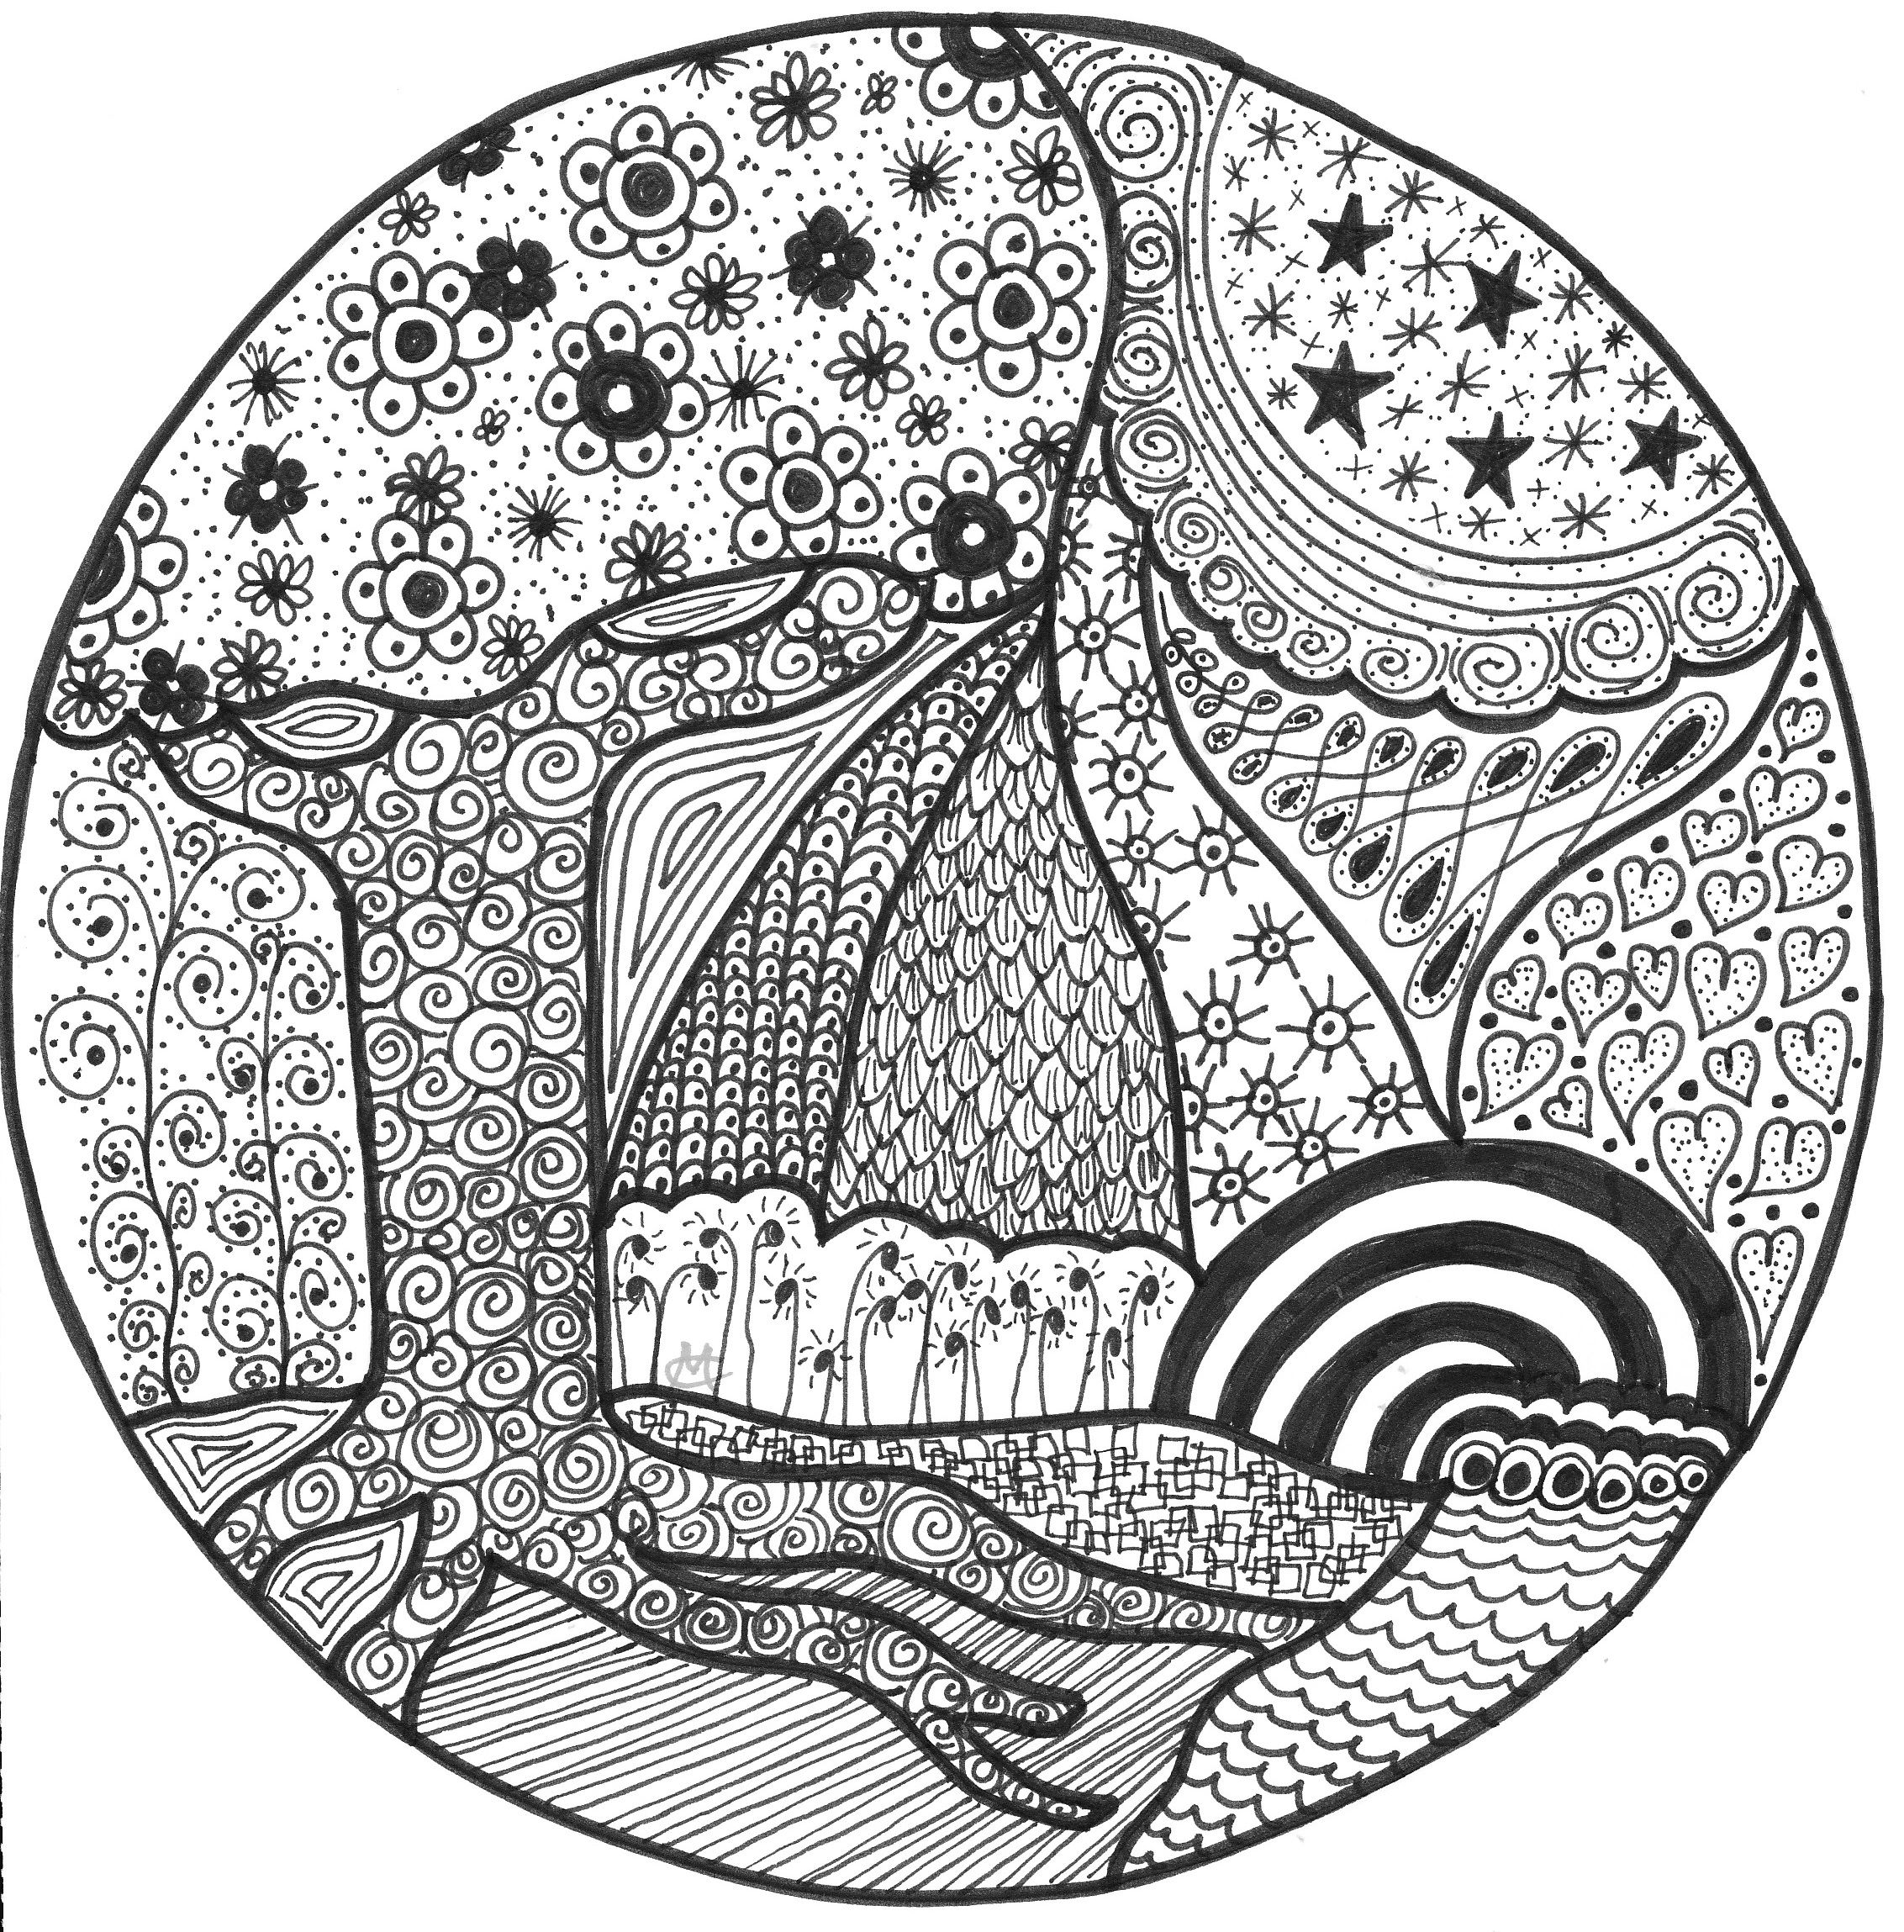 rainbow cat coloring page rainbow an original artwork by cat magness with images cat coloring rainbow page